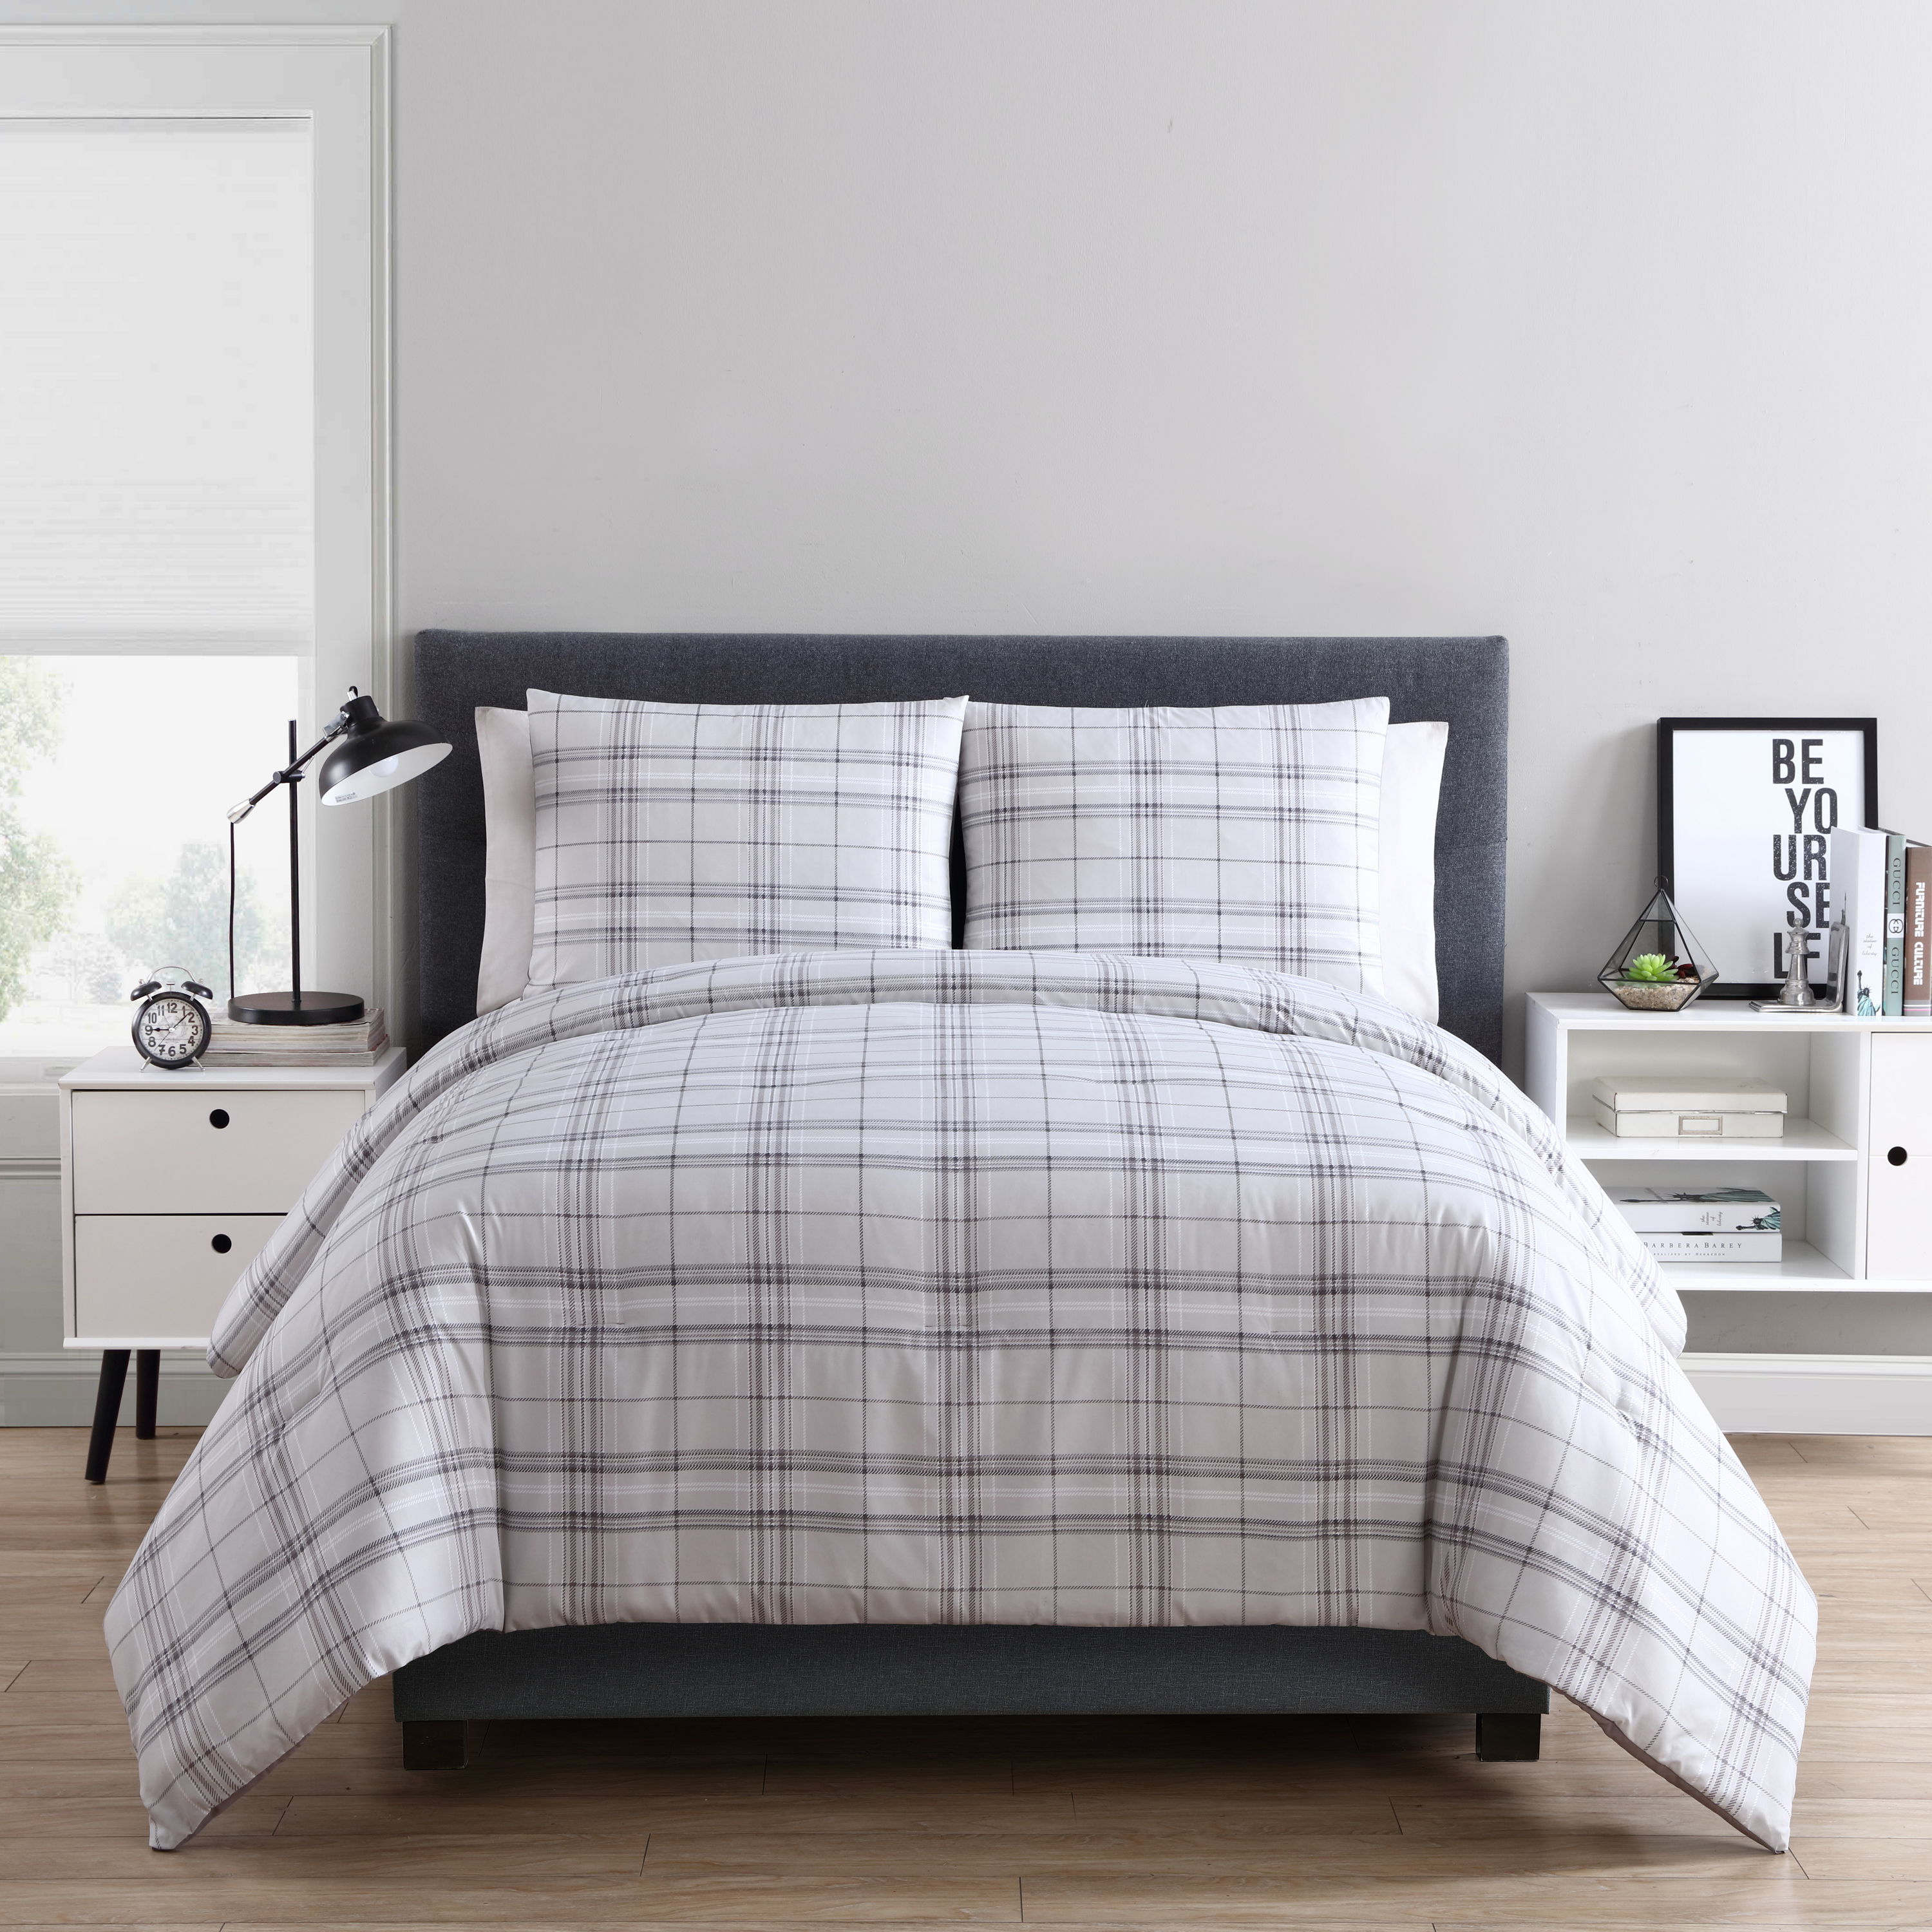 VCNY Home Taupe Box Plaid 3 Piece Bedding Comforter Set, Shams Included